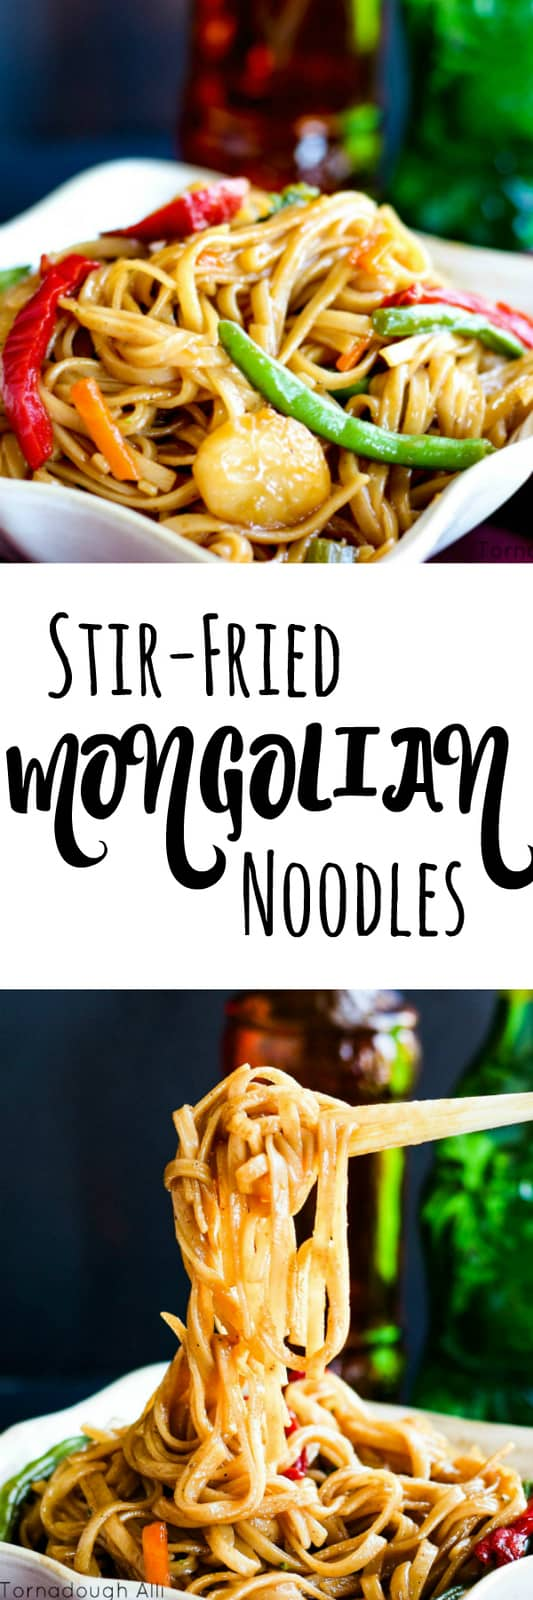 Stir Fried Mongolian Noodle Collage